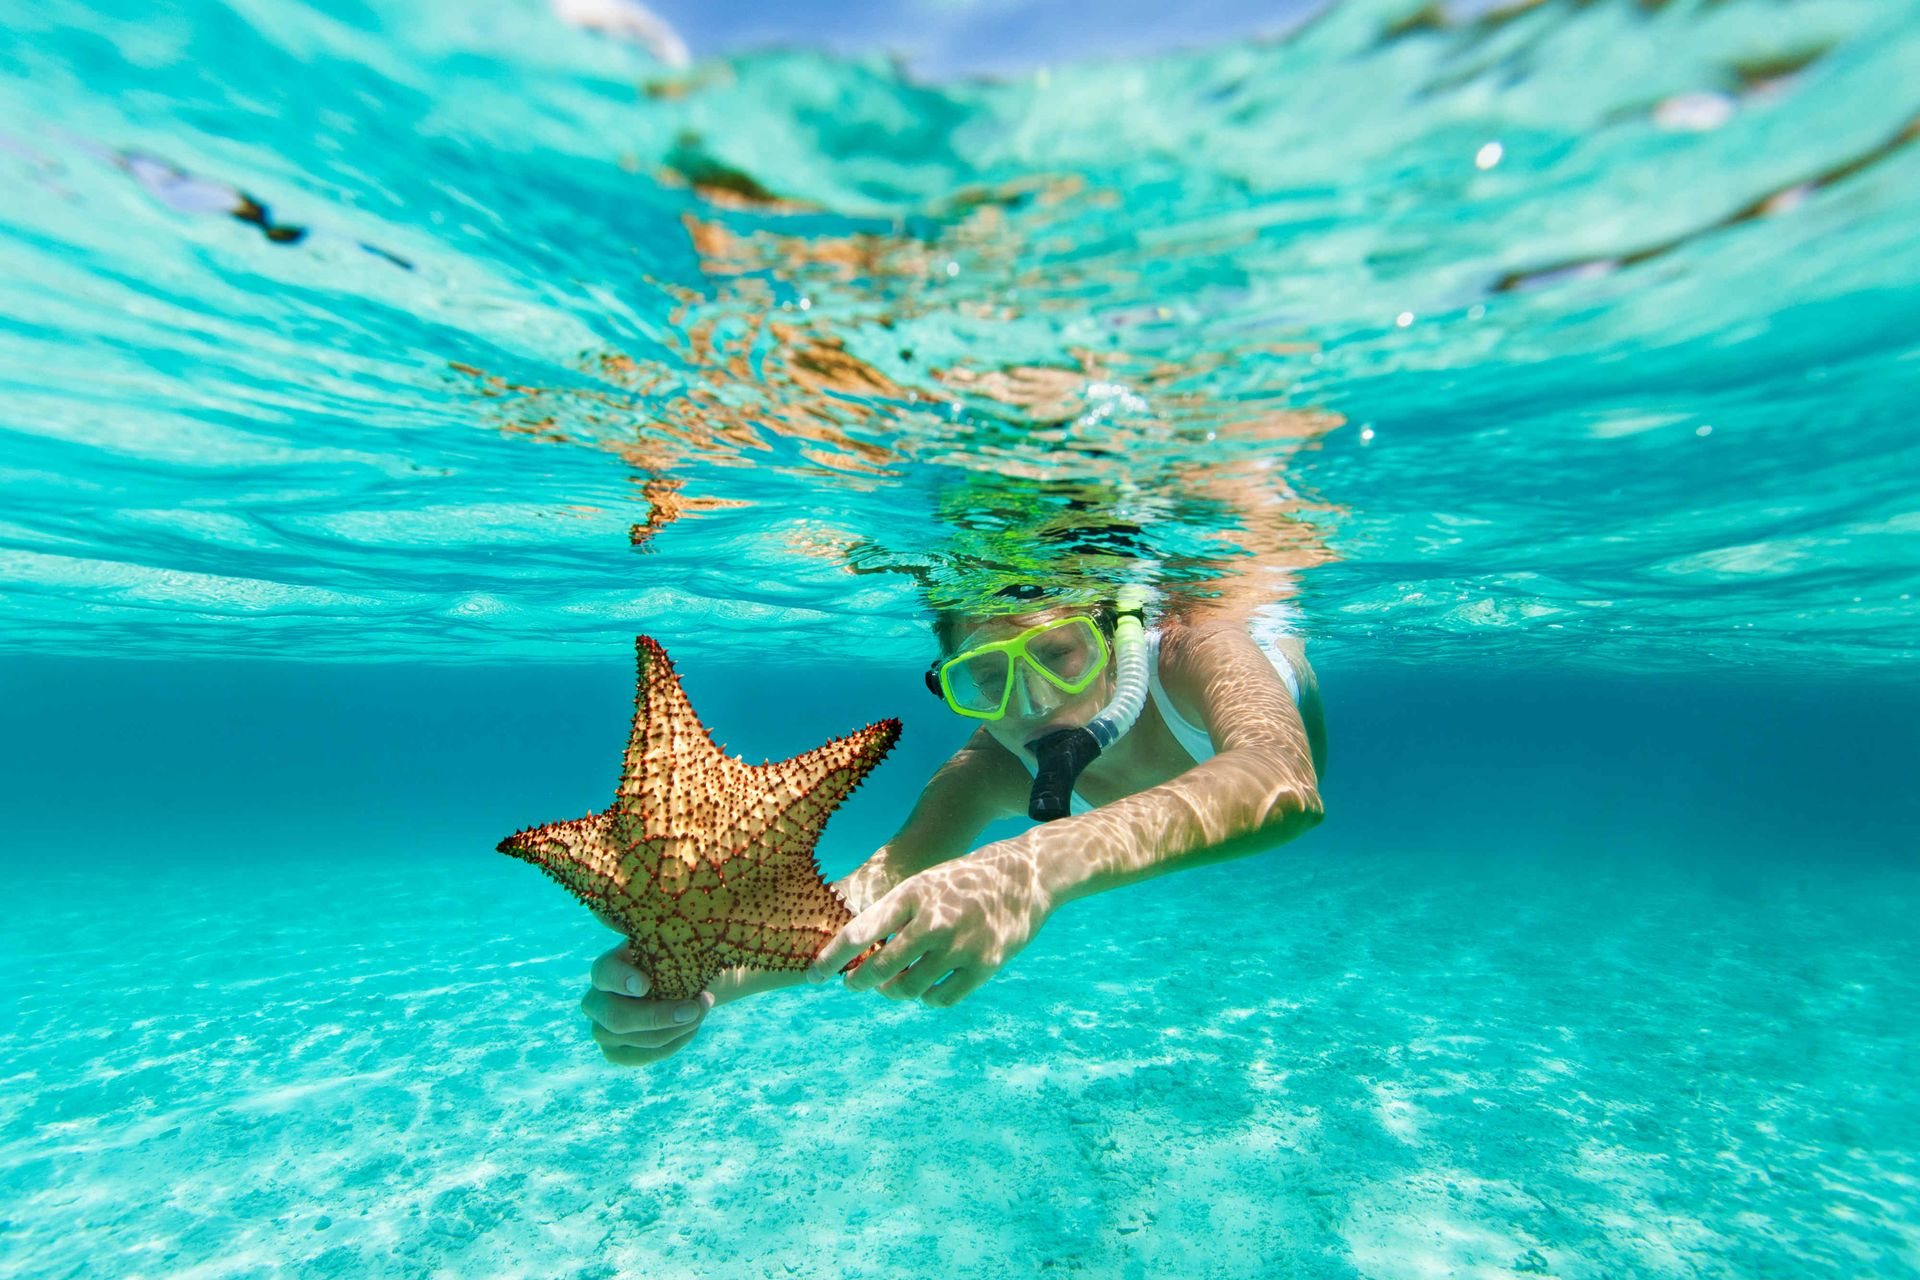 Starfish can weigh up to 11 pounds.